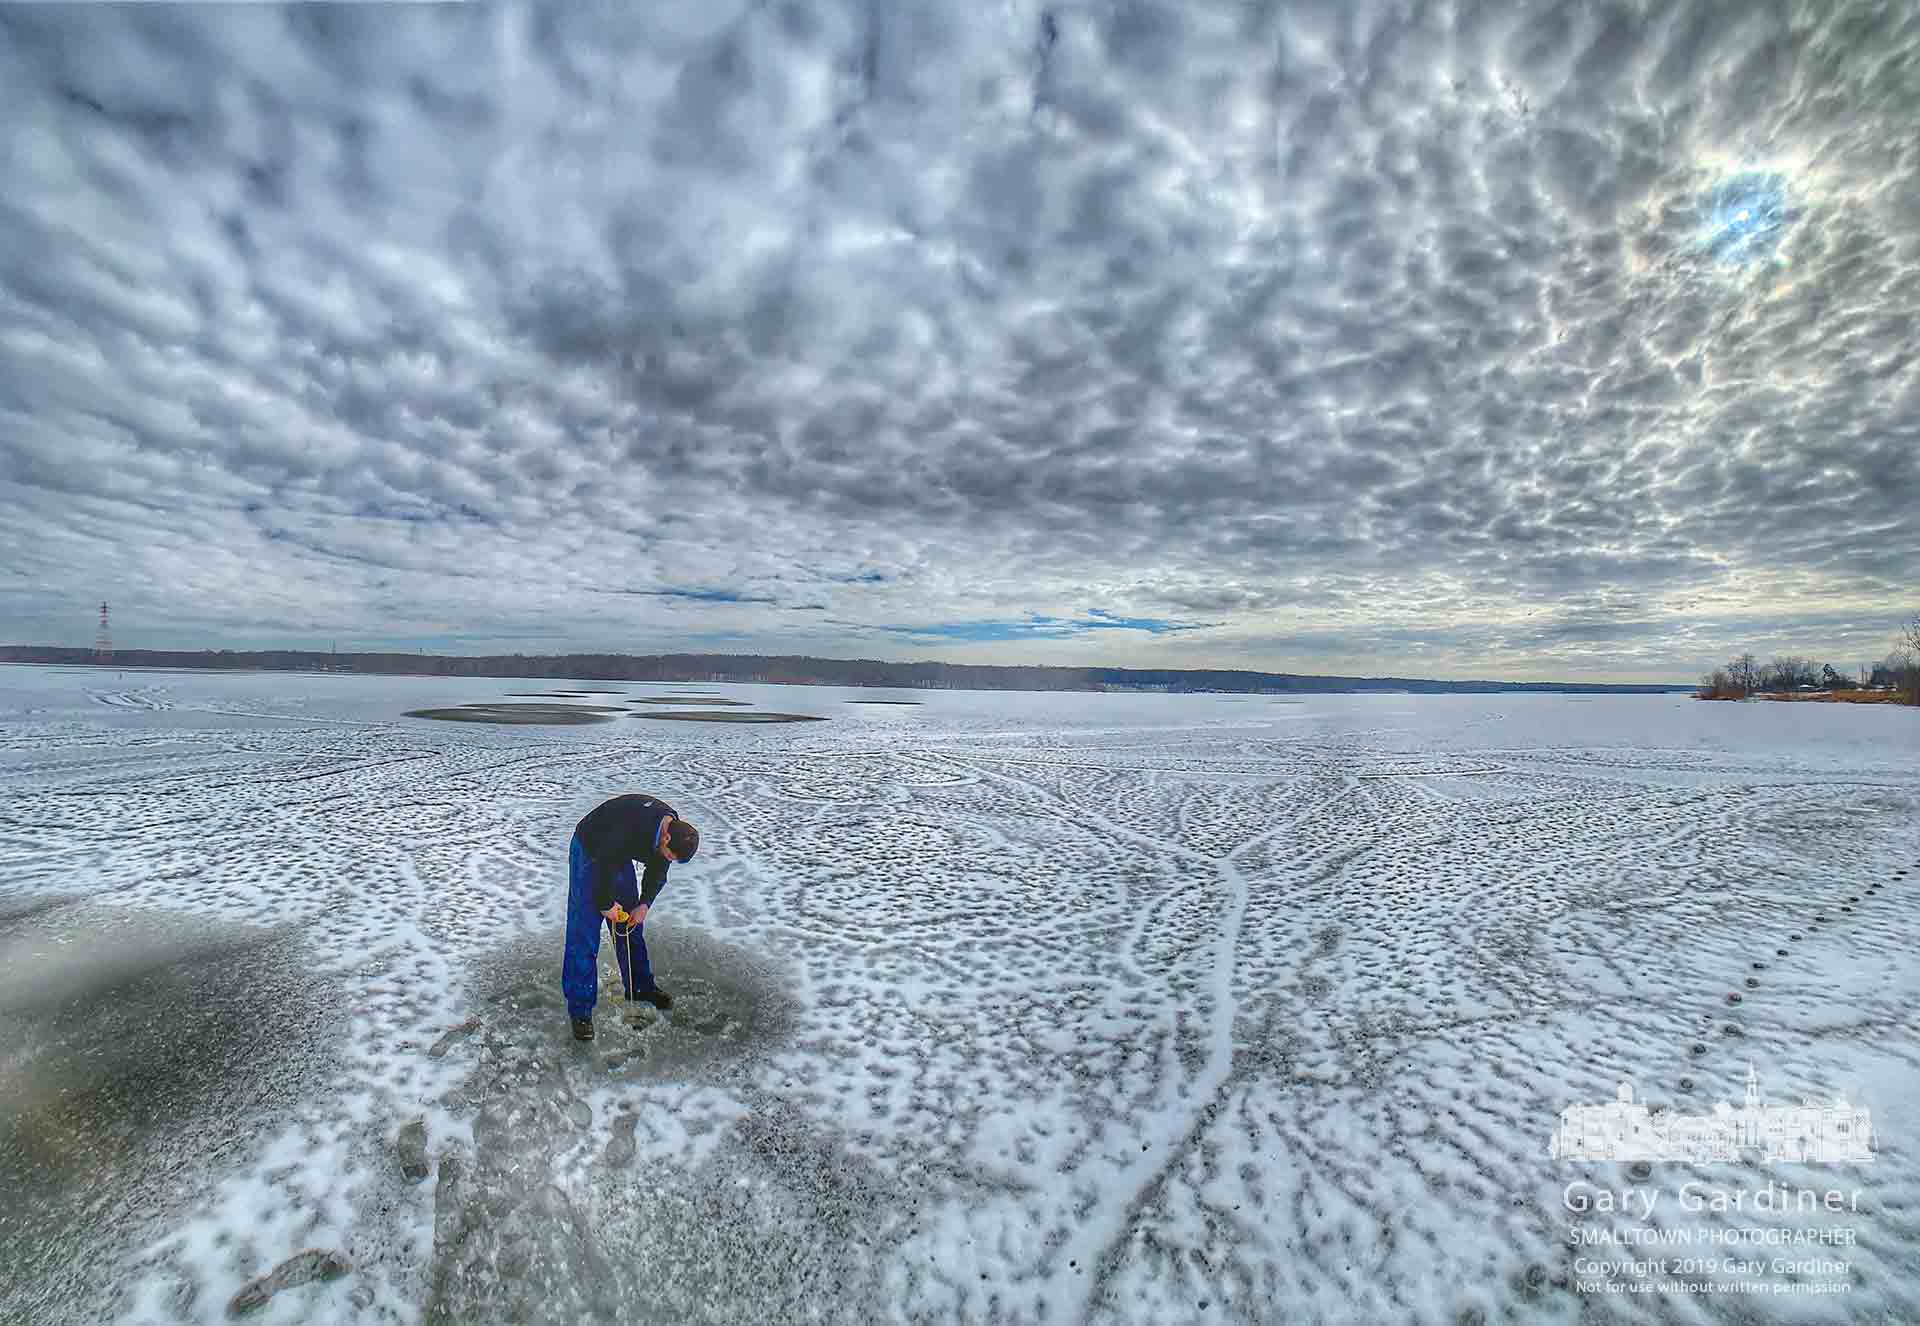 A man drops a super magnet through a holehe punched in the ice at Hoover hoping to retrieve a magnet he lost in an earlier attempt at magnet fishing off the Walnut boat ramp. My Final Photo for Feb. 3, 2019.